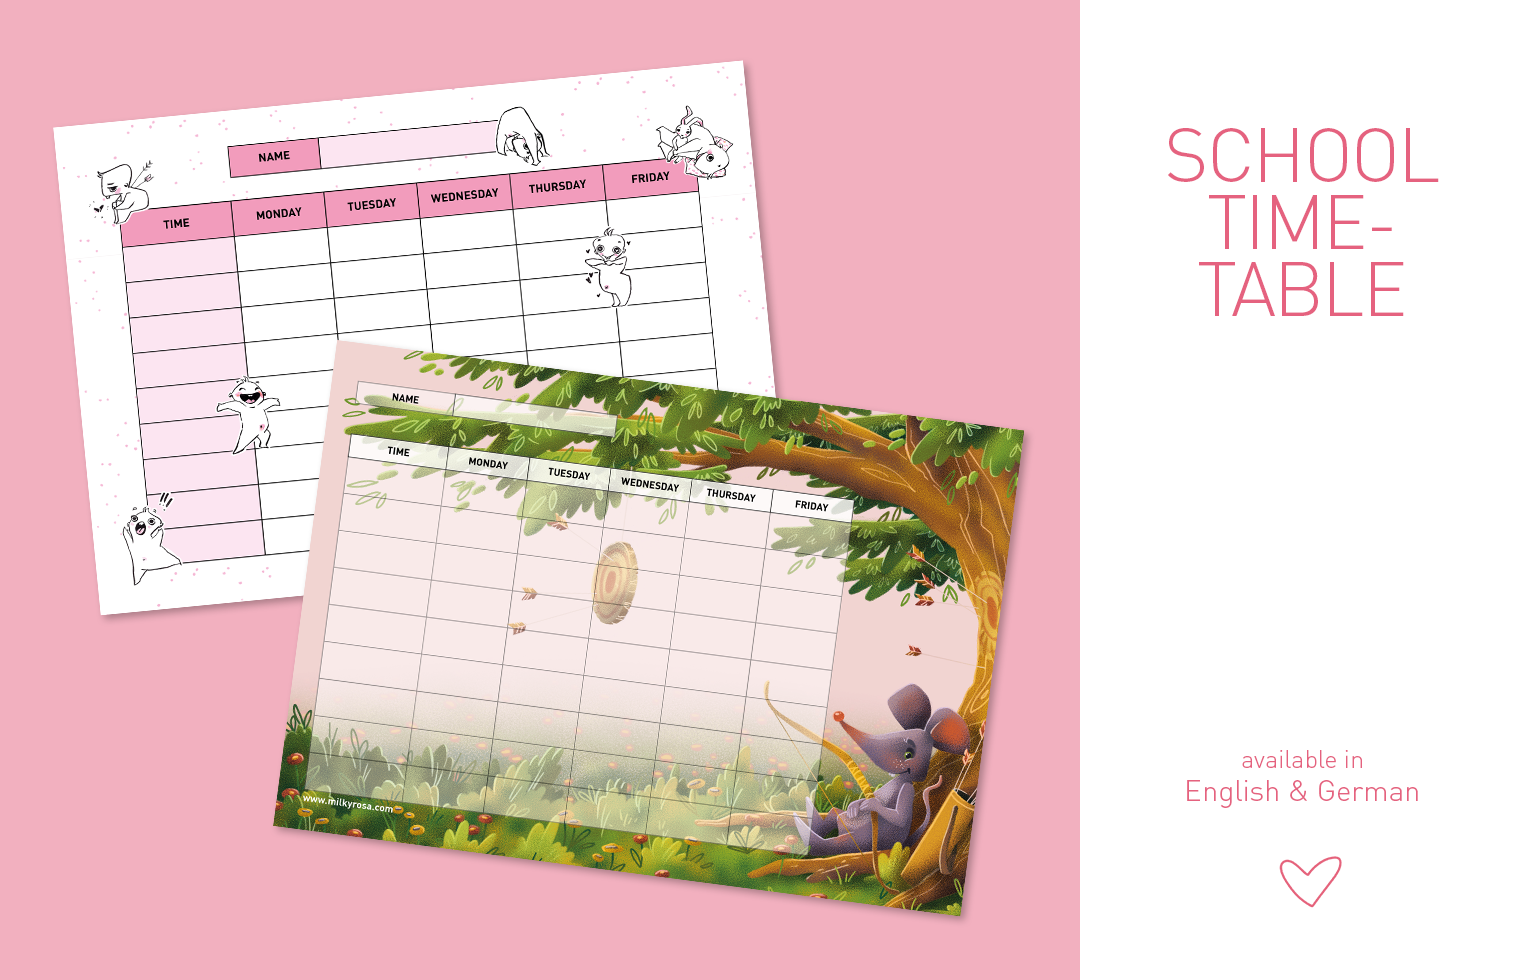 School Timetable - Cute Guy - Mouse Warr